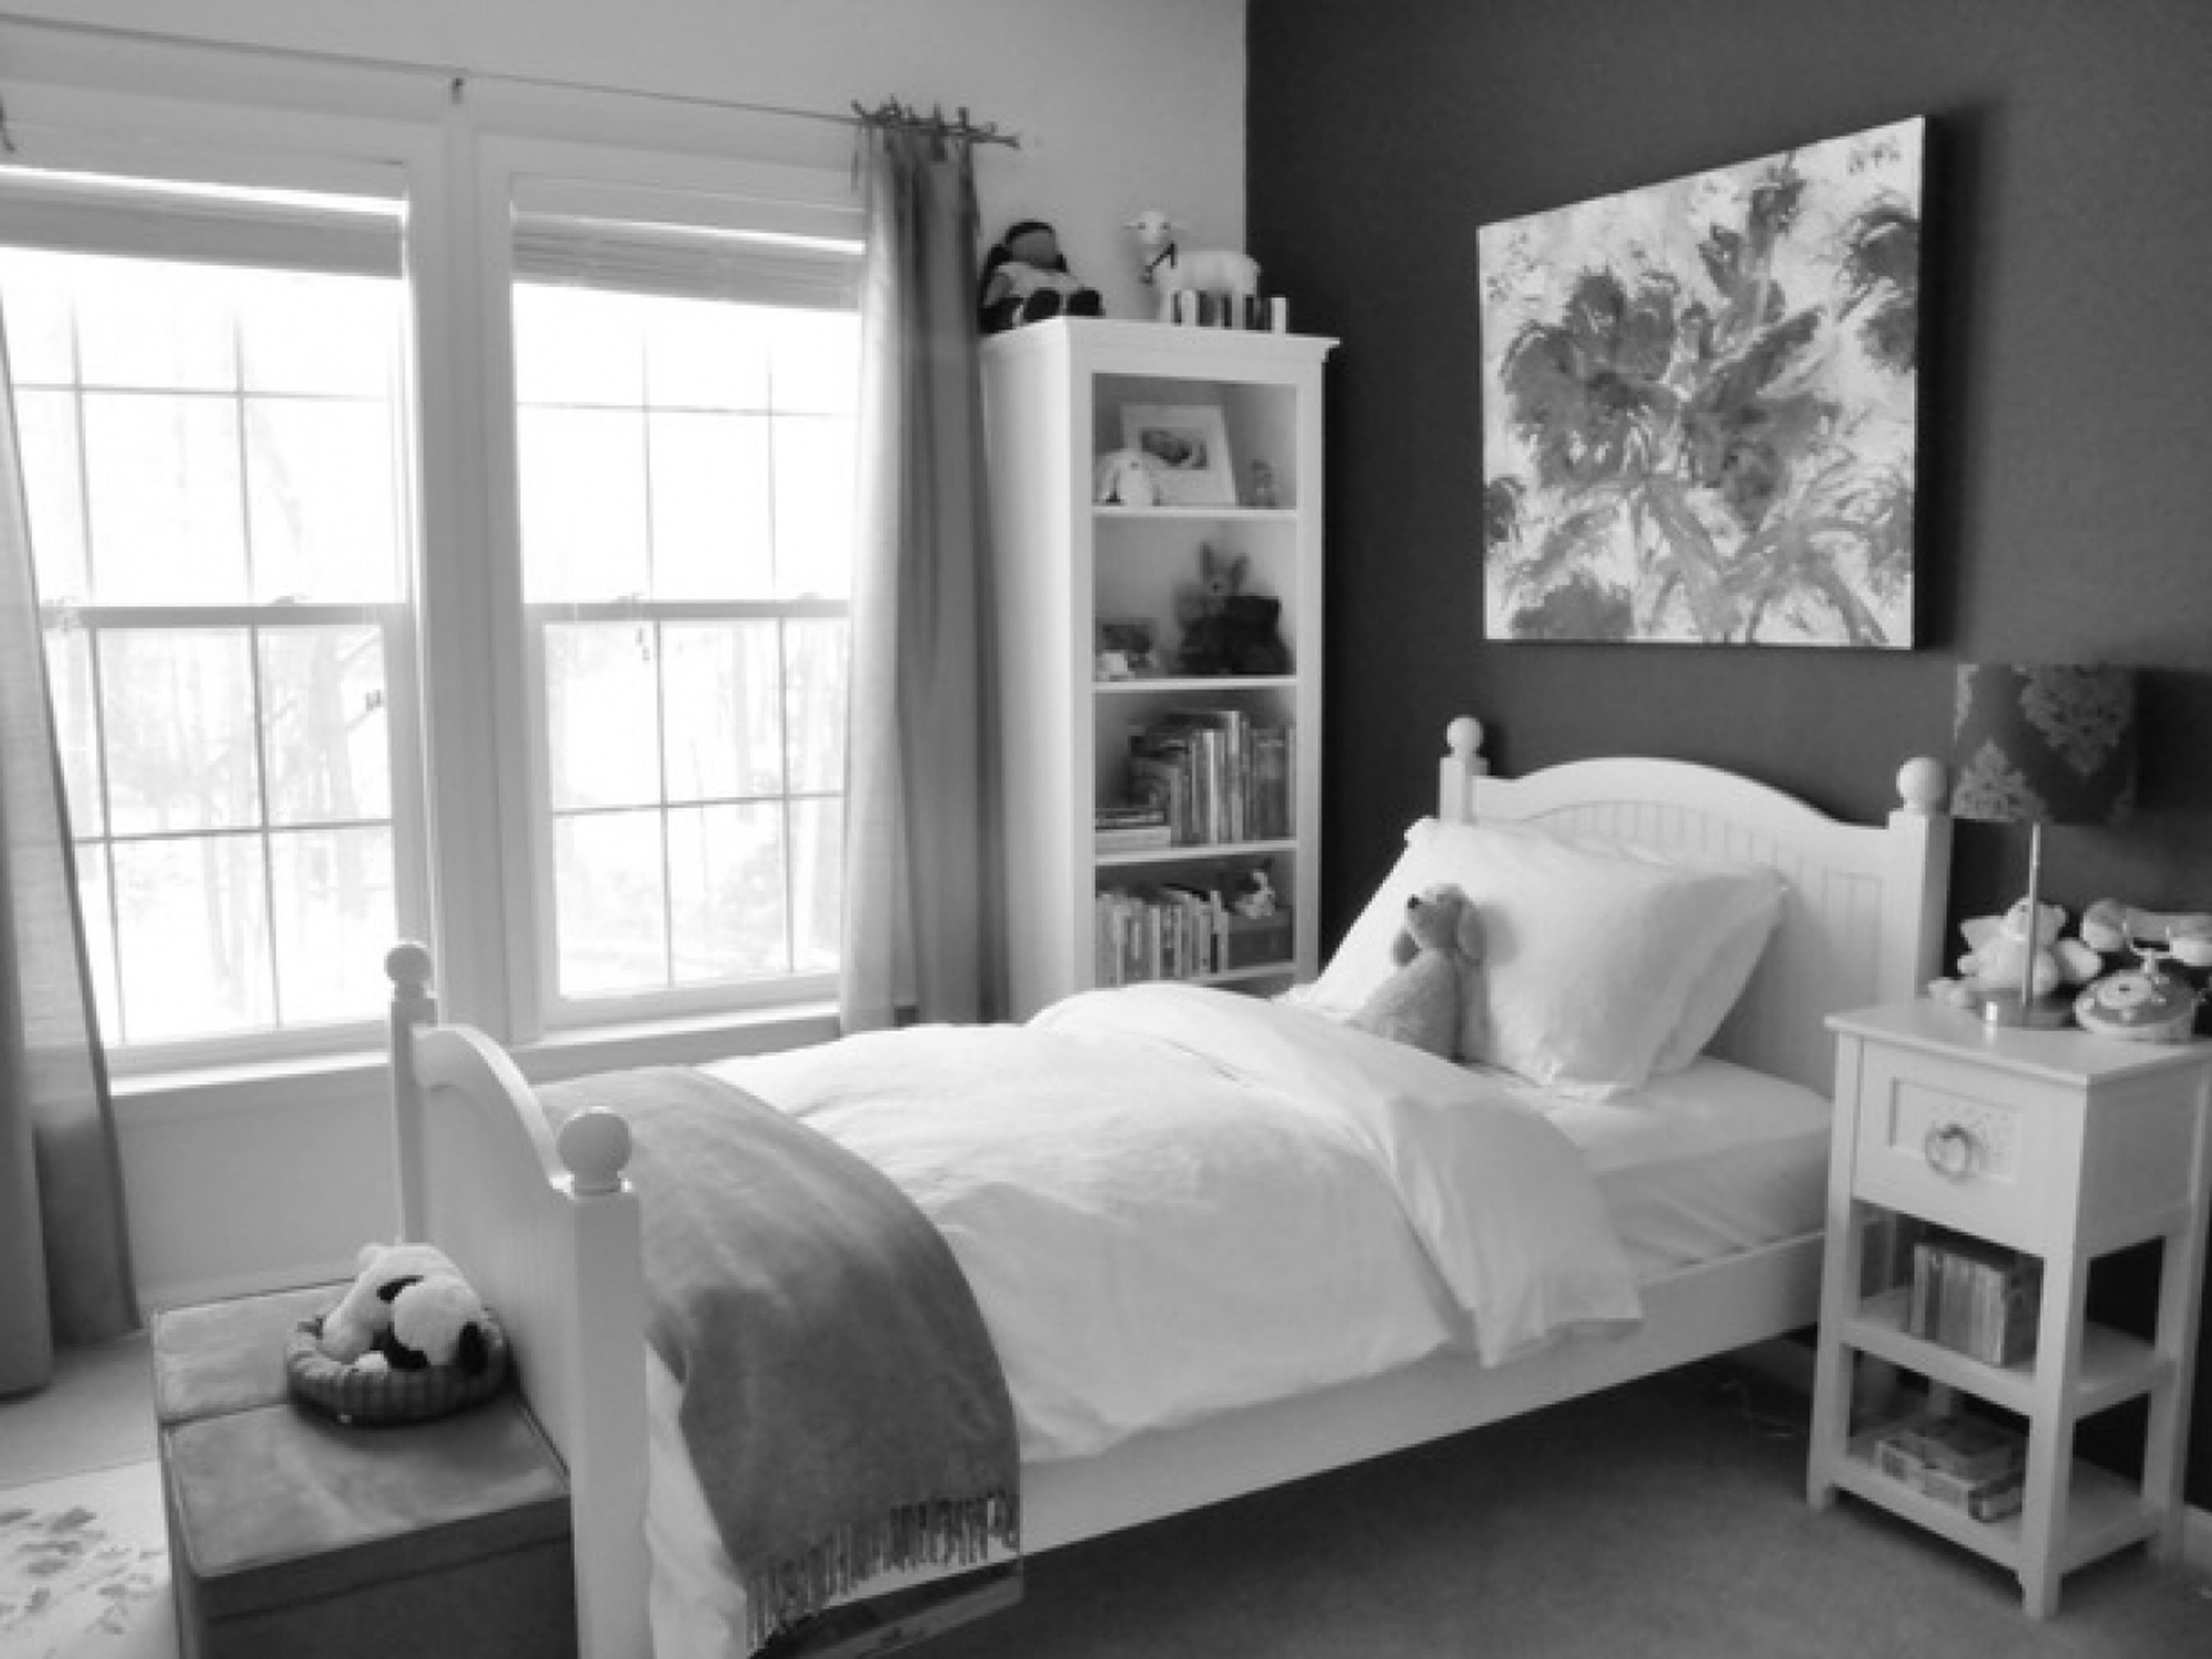 10 Fabulous Bedroom Ideas For Young Adults bedroom bedroom ideas for young adults bedroom waplag and young 2021